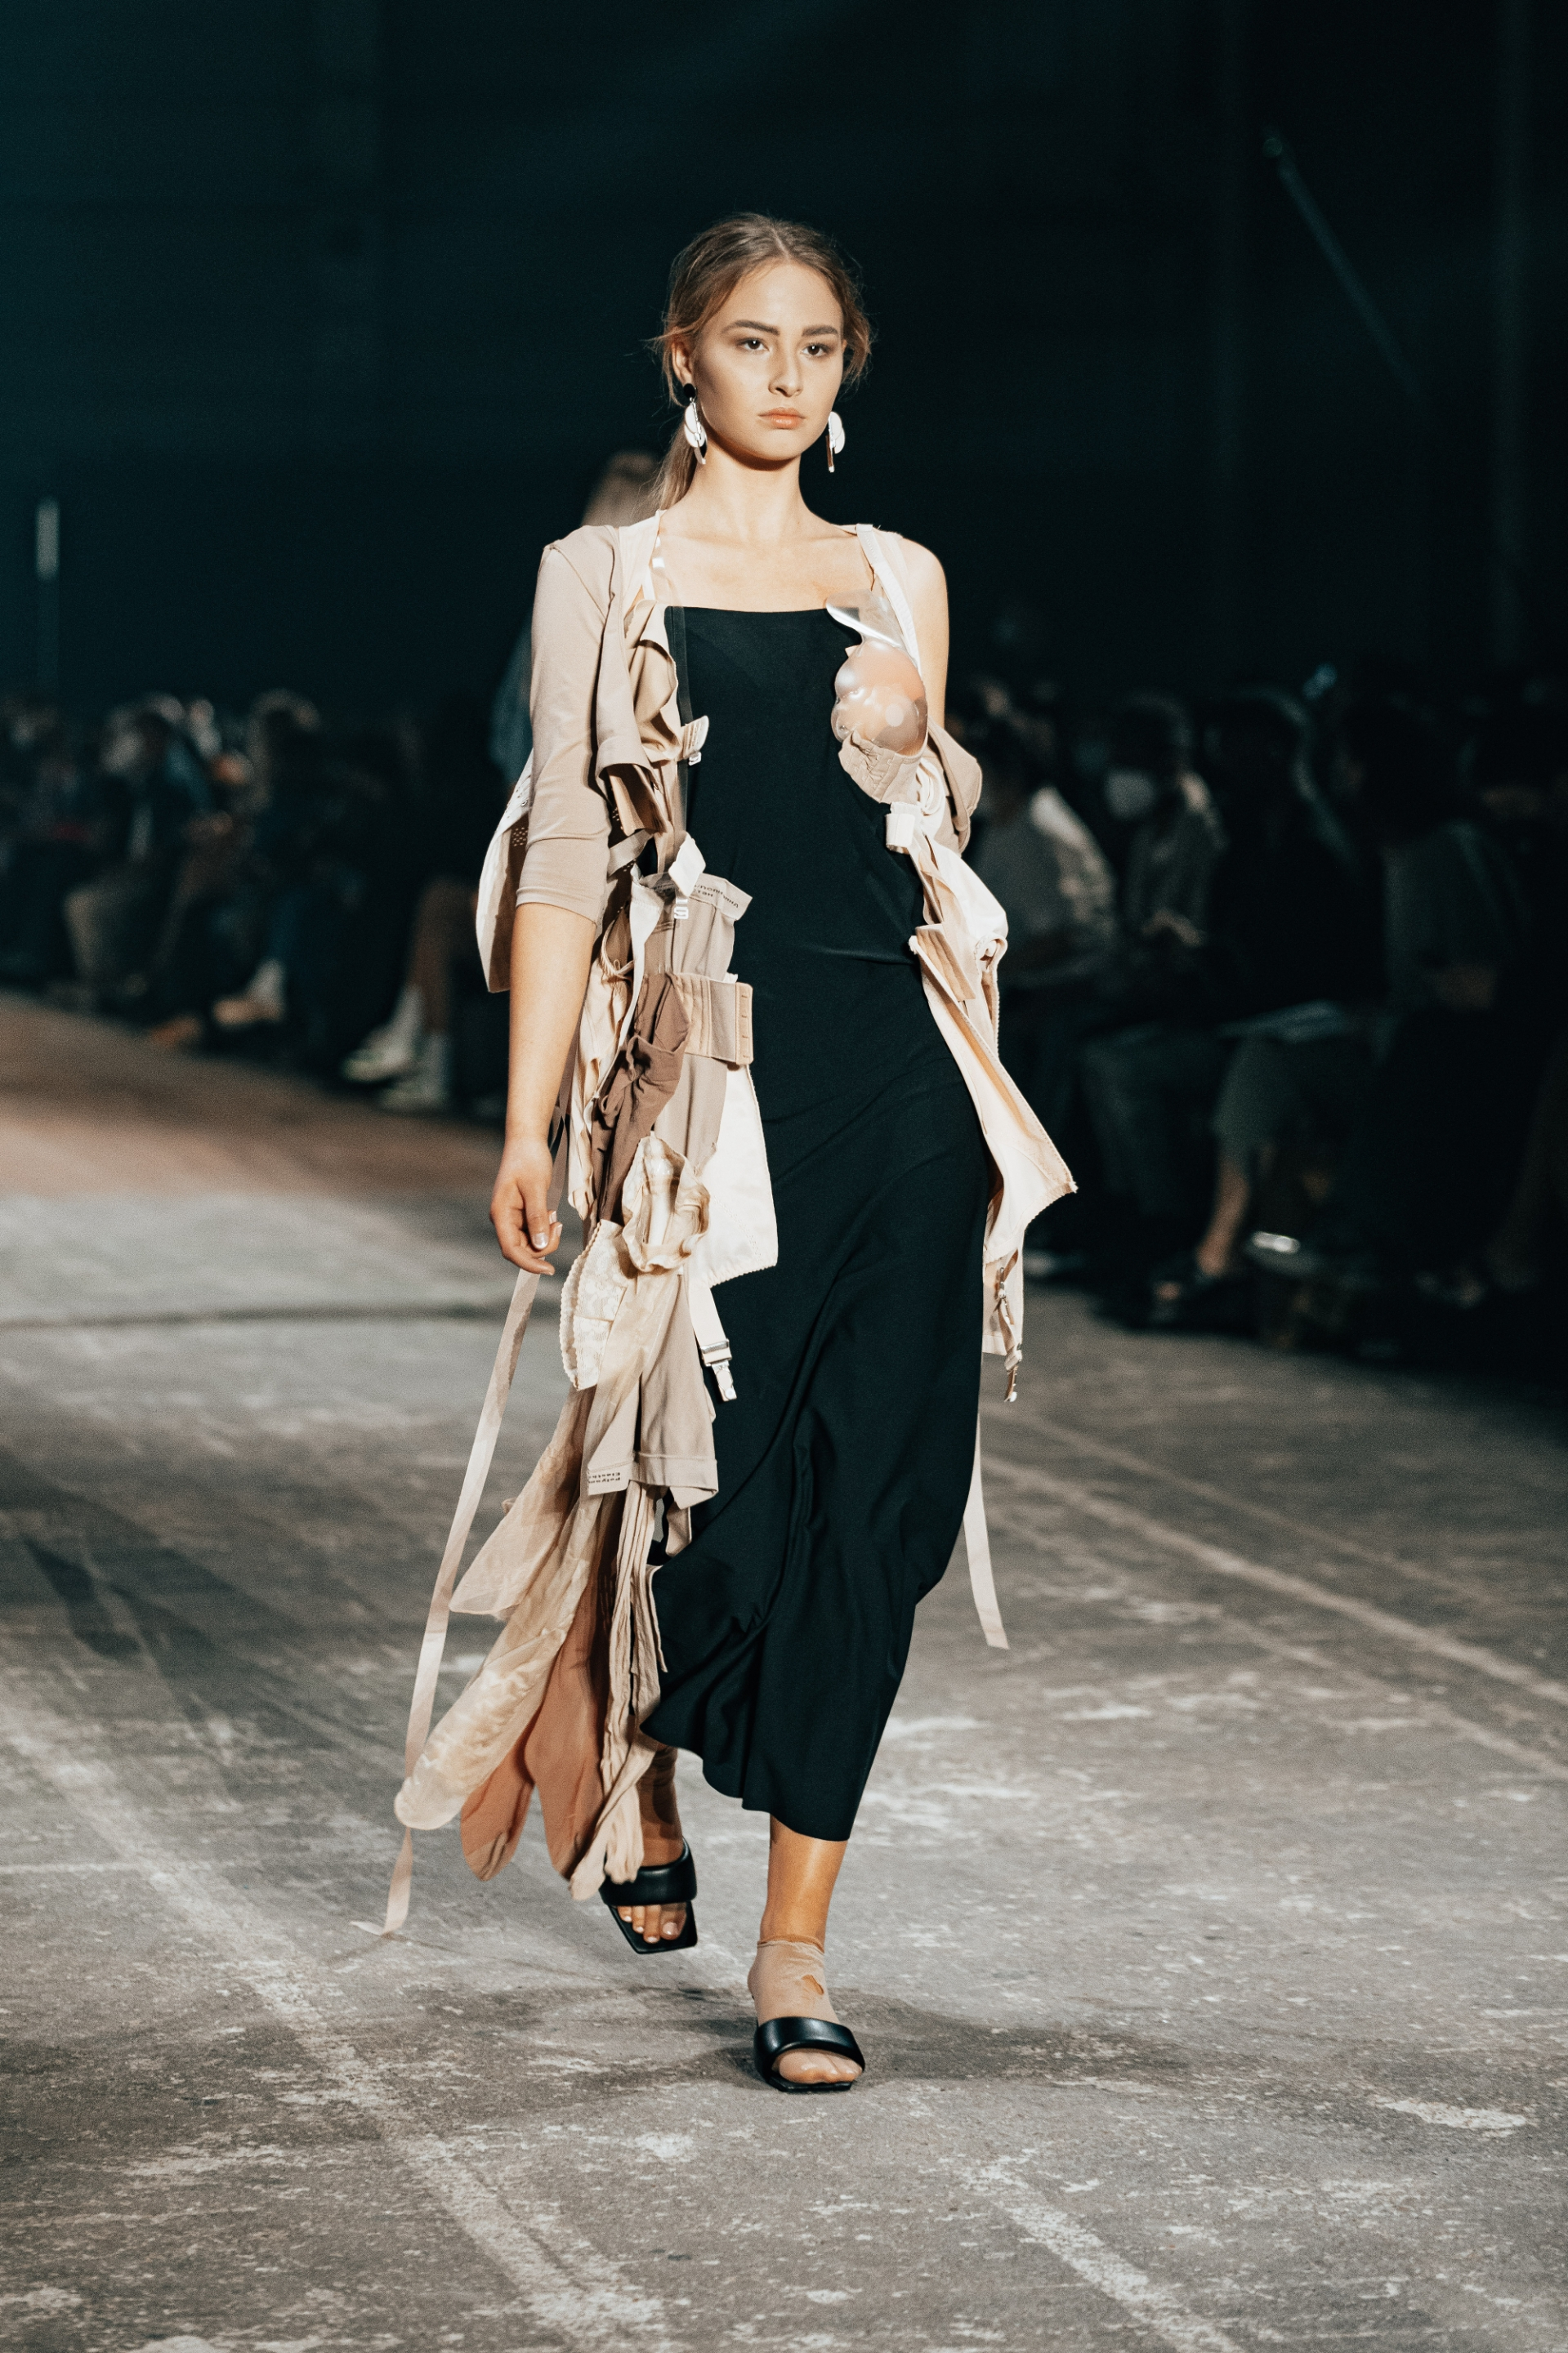 """BERLIN, GERMANY - SEPTEMBER 08: A models walks the runway during the """"Neo.Fashion. Graduate Show"""" of Best Graduates Show & Award at Mercedes-Benz Fashion Week"""" at the Mercedes-Benz Fashion Week Berlin September 2021 at Kraftwerk on September 8, 2021 in Berlin, Germany. (Photo by Robert Schlesinger/Getty Images for Neo.Fashion.)"""